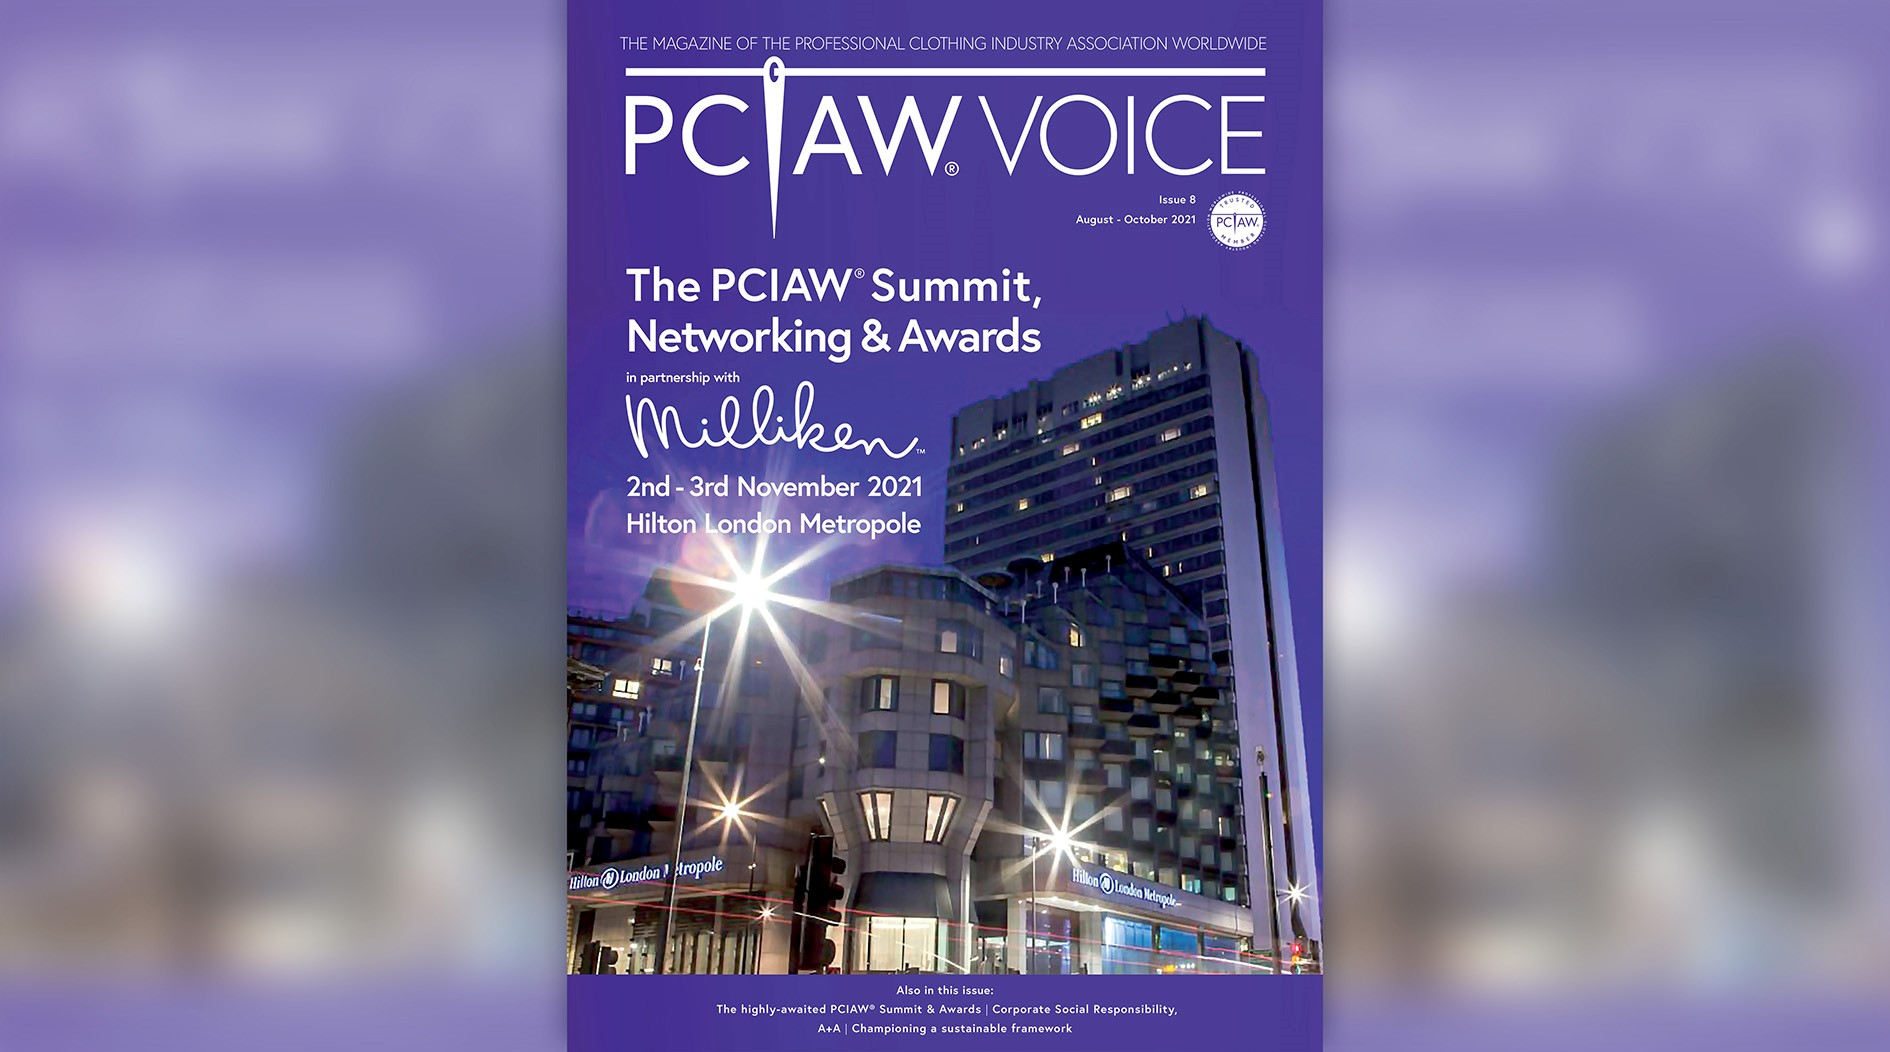 The latest edition of PCIAW®VOICE Magazine is out now!